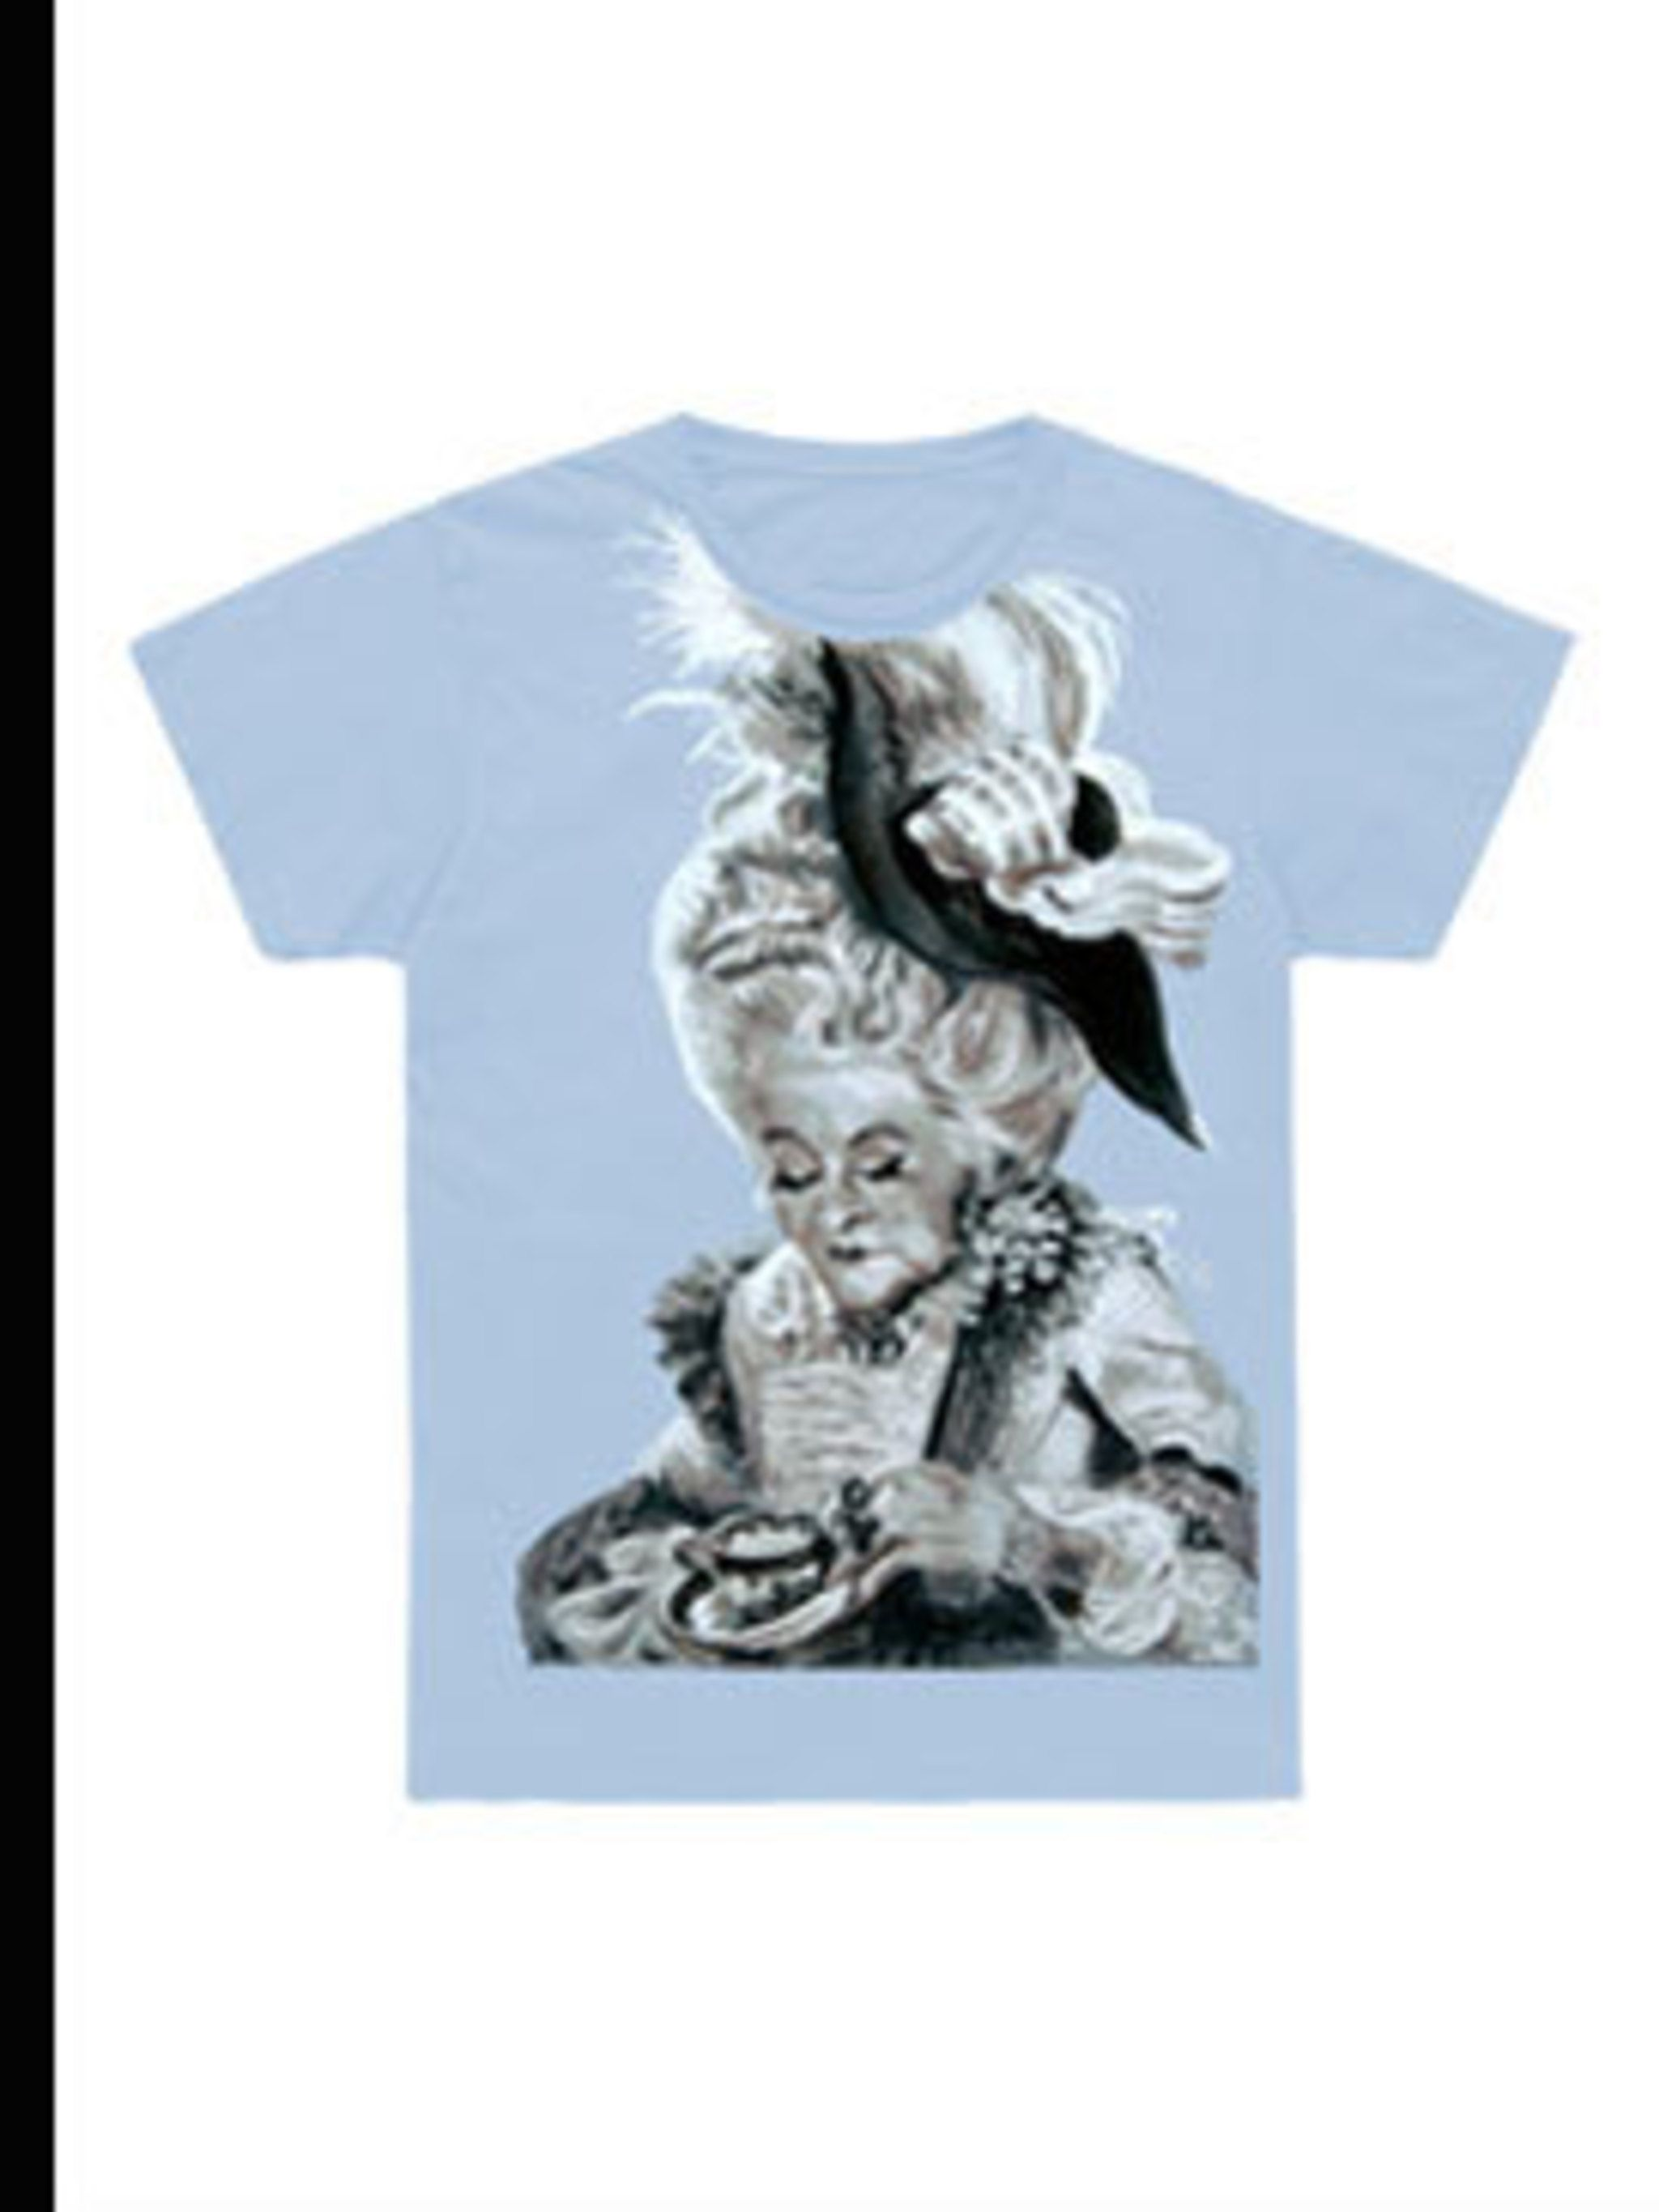 <p>Marie Antoinette T-shirt, £20 from Marc Jacobs, for stockists call 020 7907 2515</p>